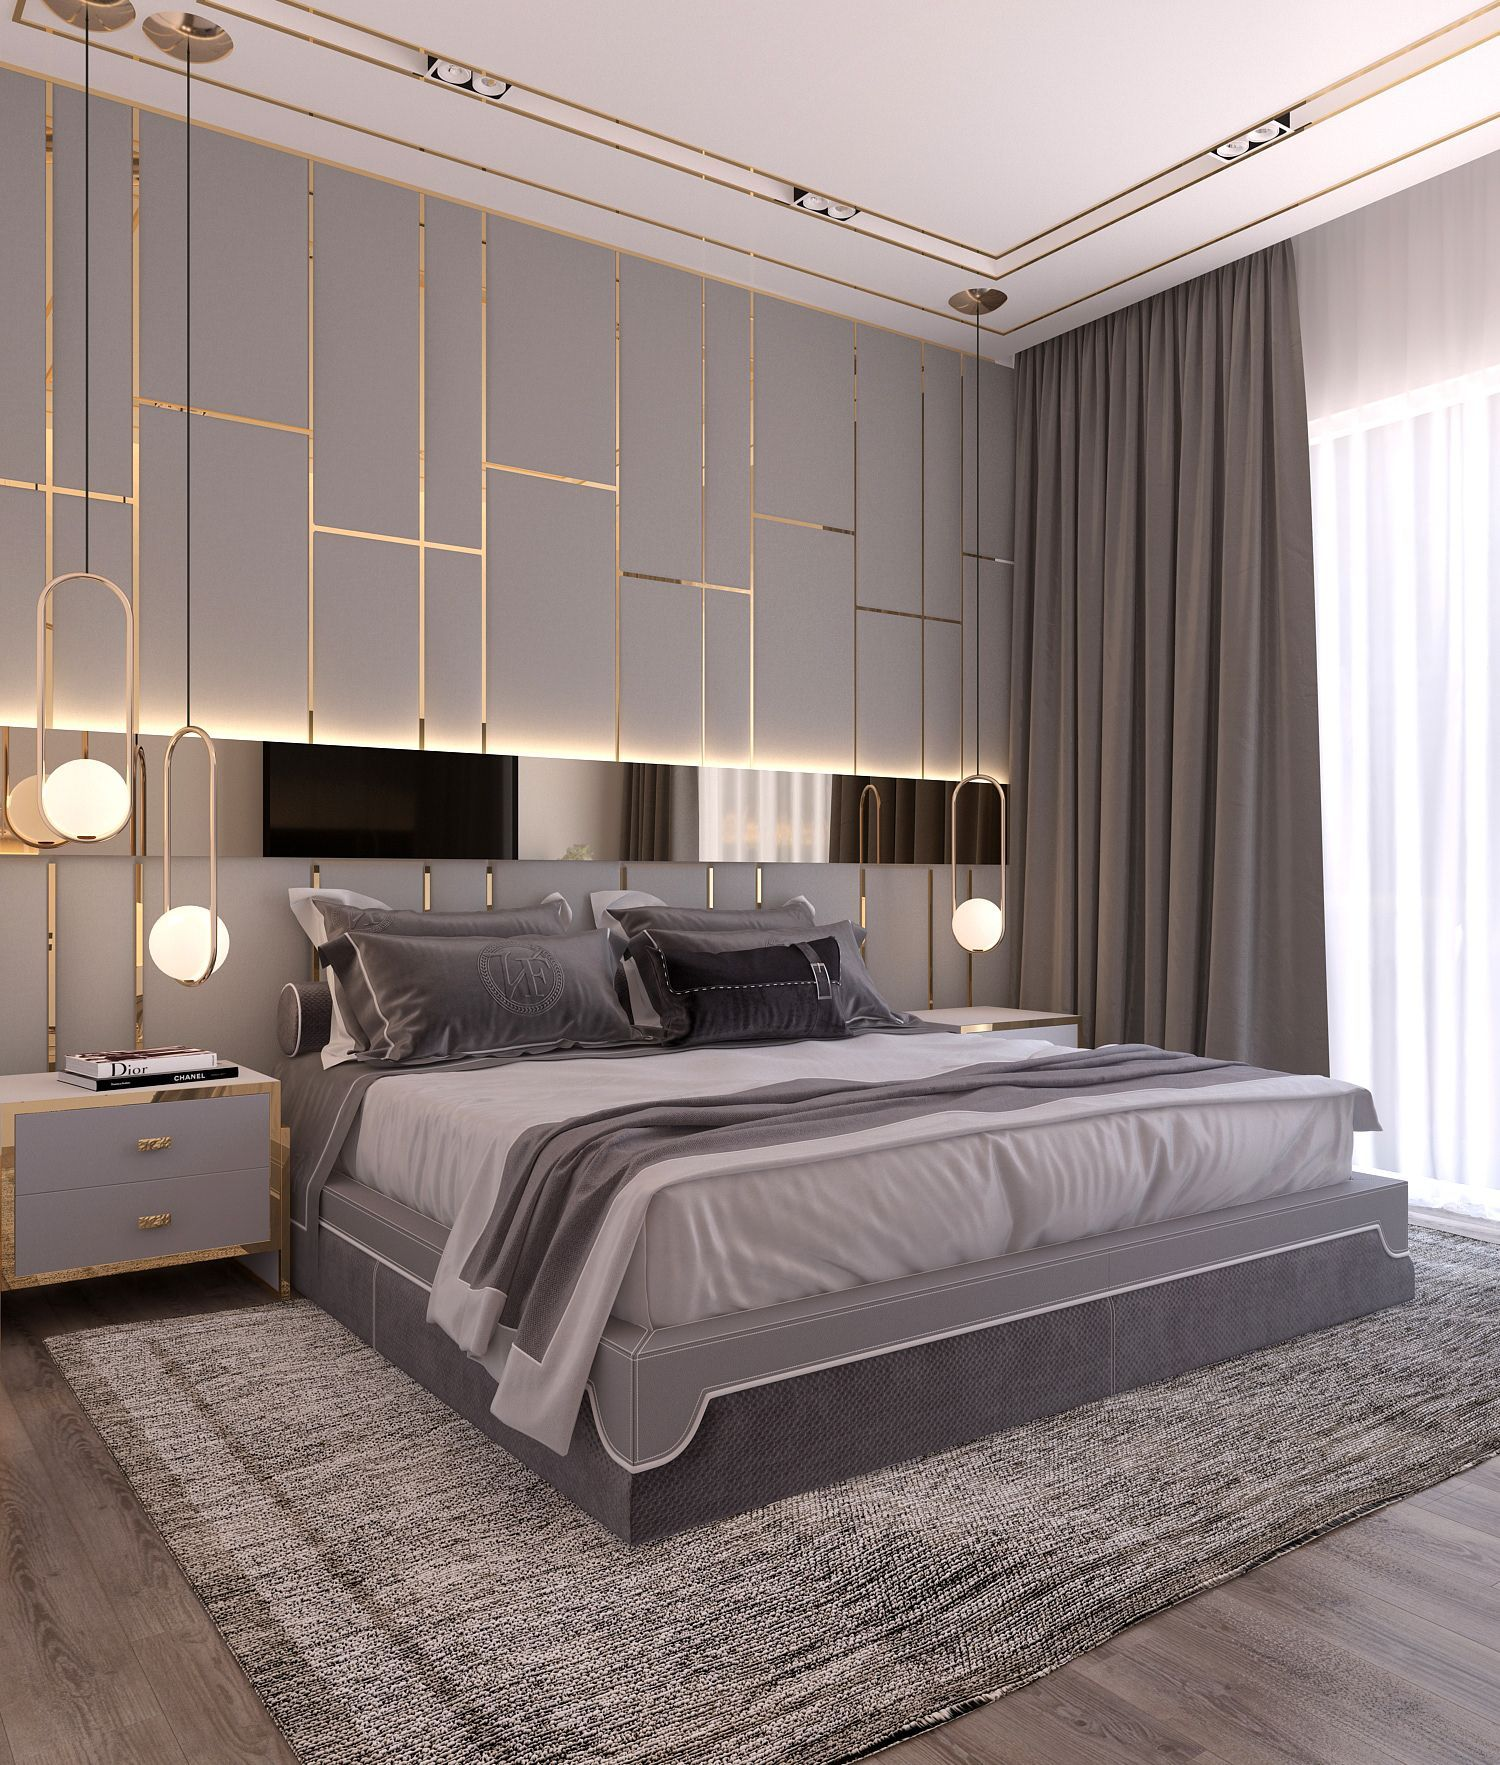 Amazing Bedroom Design Ideas [Simple, Modern, Minimalist ...